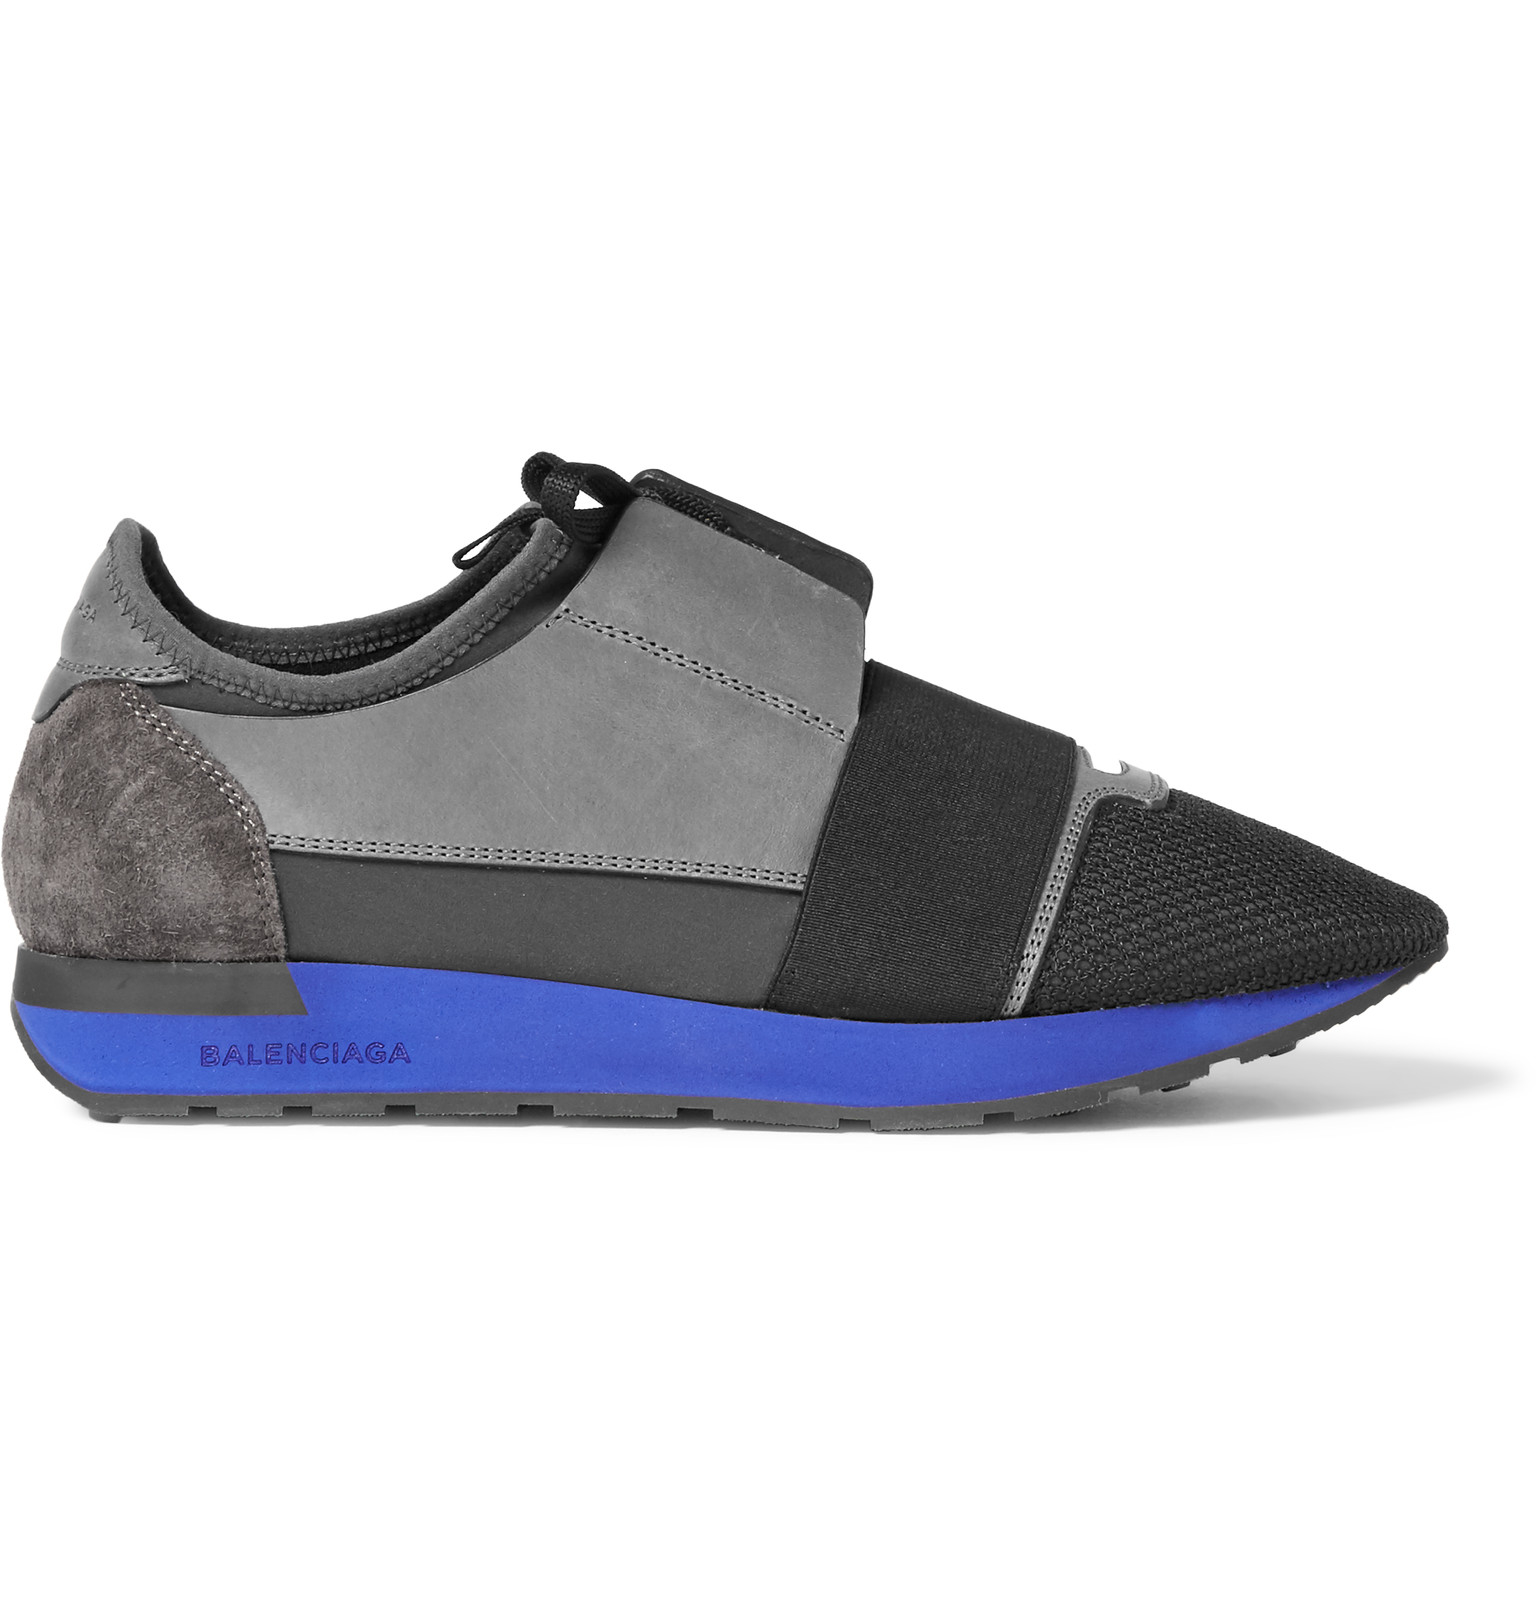 balenciaga panelled leather mesh and neoprene sneakers in gray for men lyst. Black Bedroom Furniture Sets. Home Design Ideas